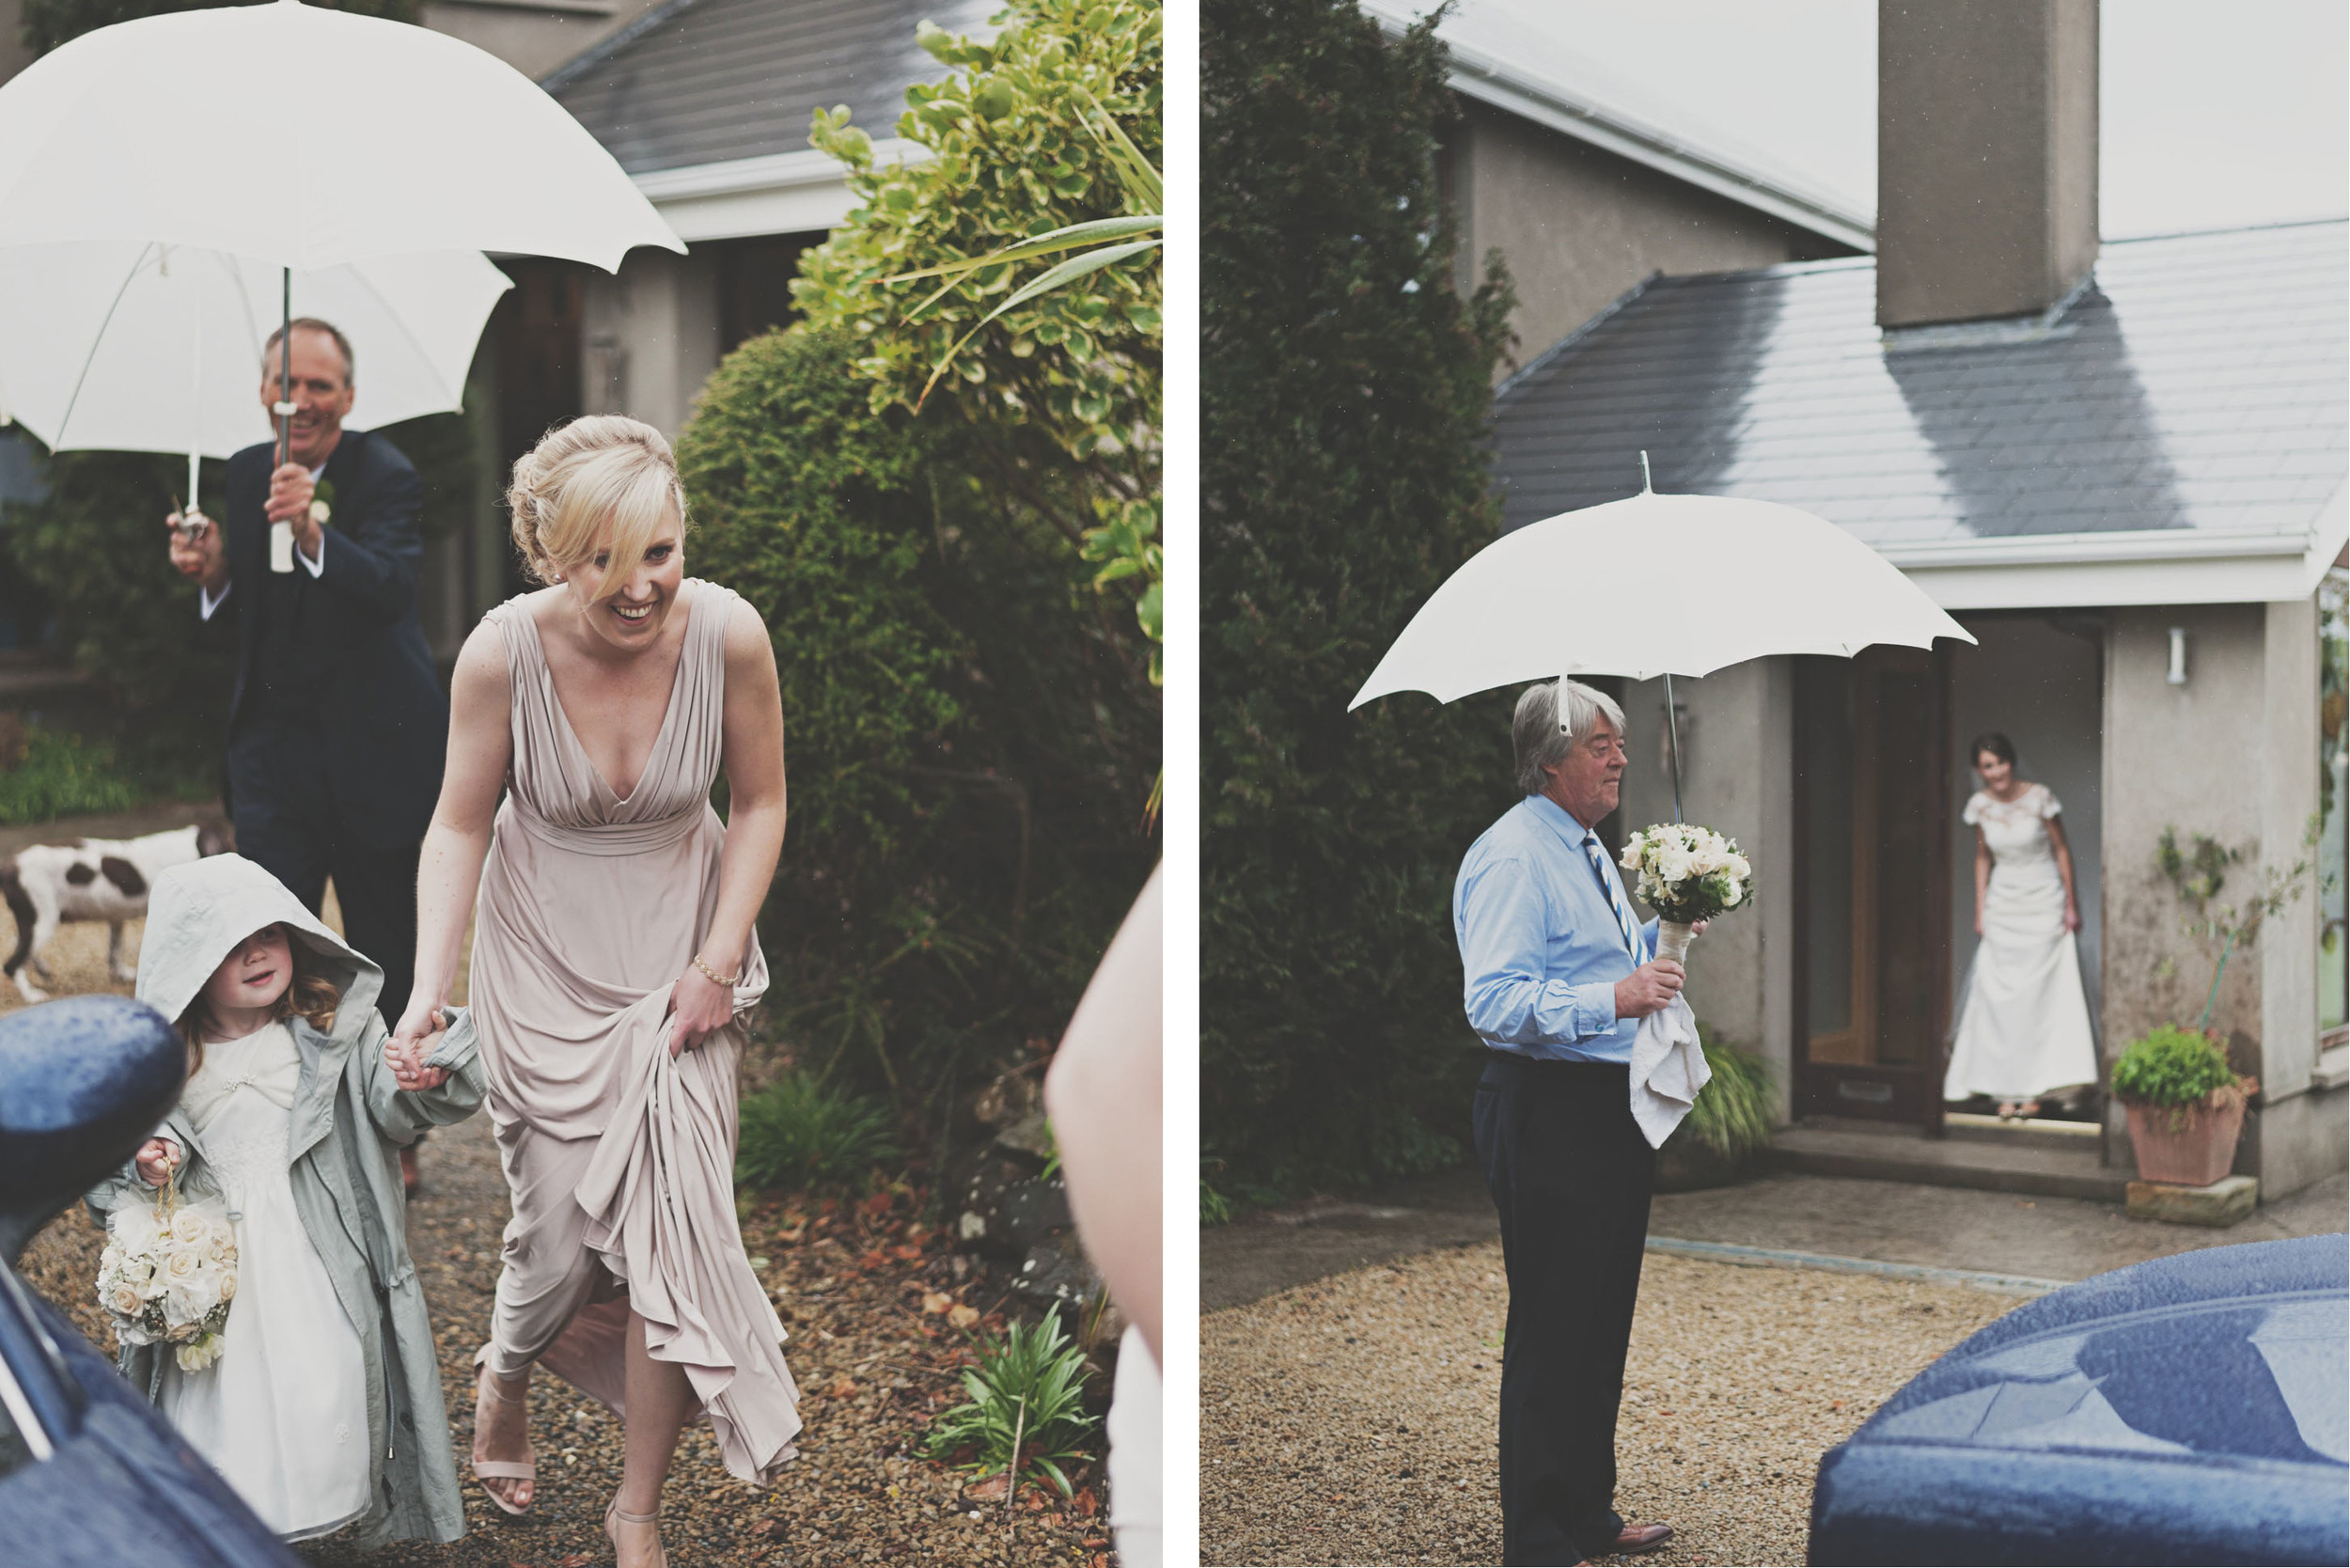 Drizzle of rain as bride leaves the house